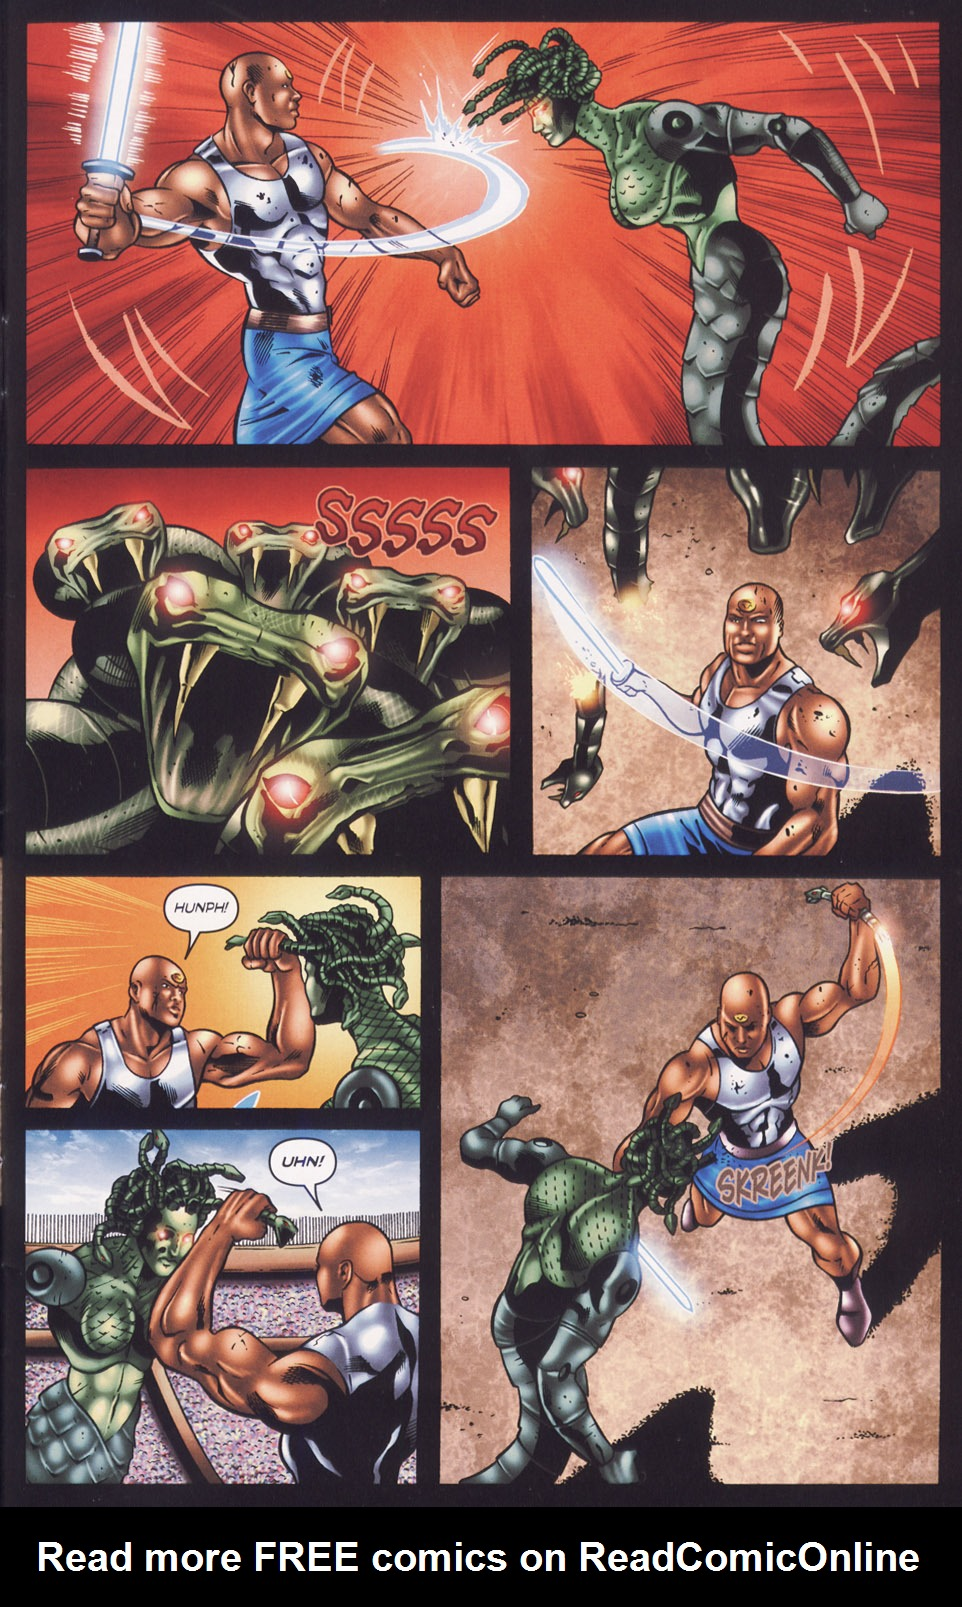 Read online Stargate SG-1: Fall of Rome comic -  Issue #3 - 7